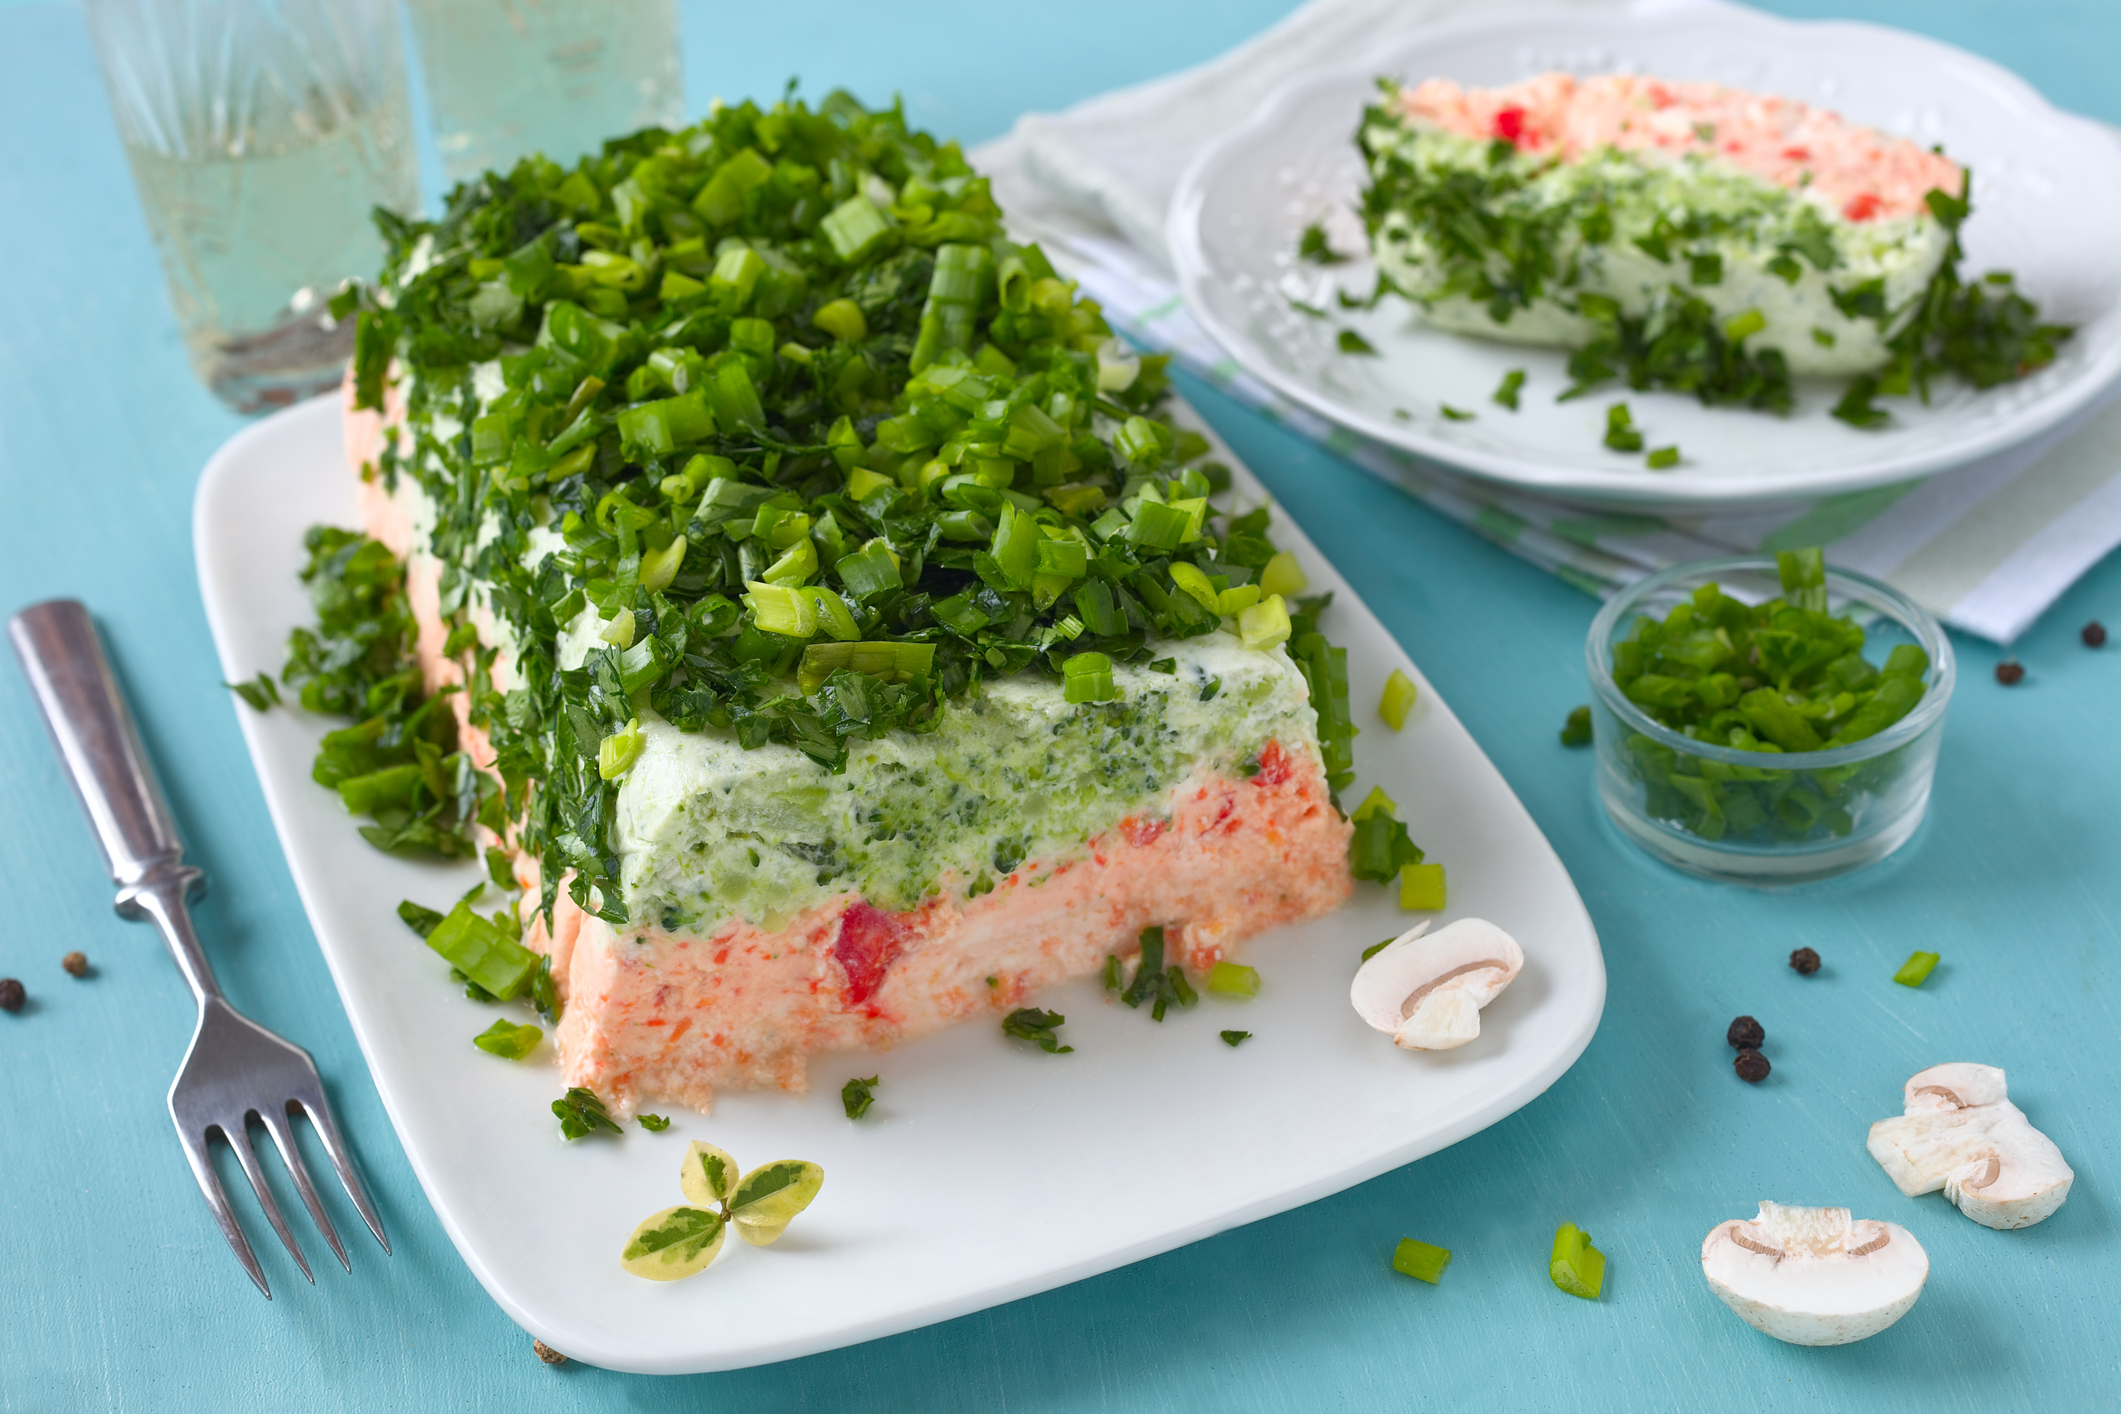 Terrine de saumon et brocolis